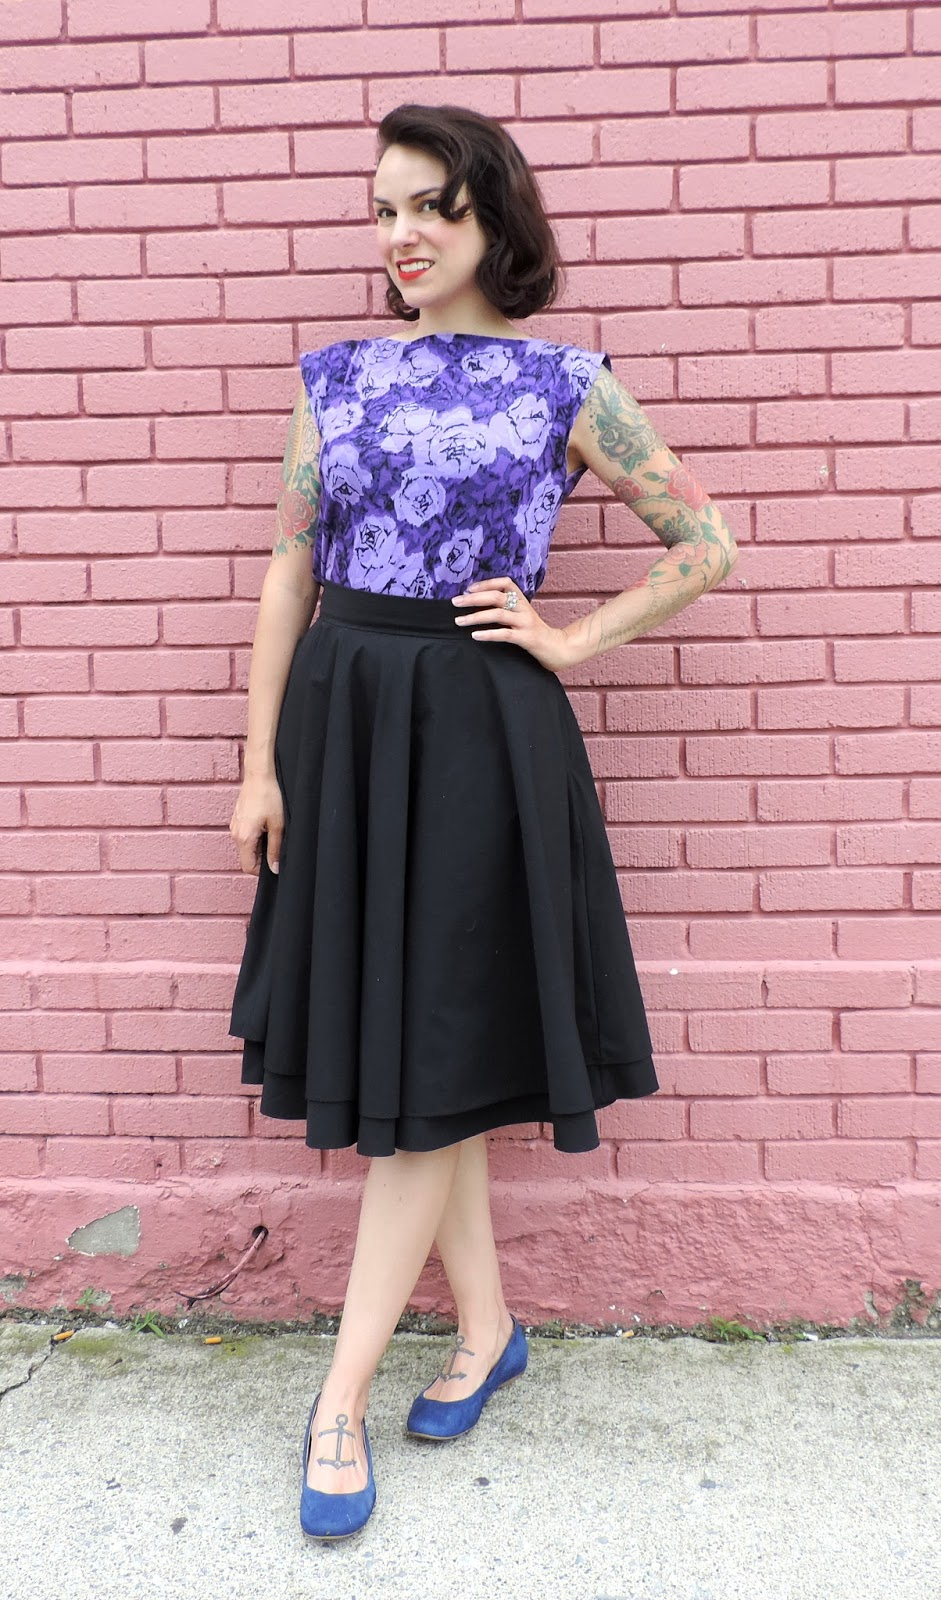 Gertie\'s New Blog for Better Sewing: Make This Top! Free Vintage ...